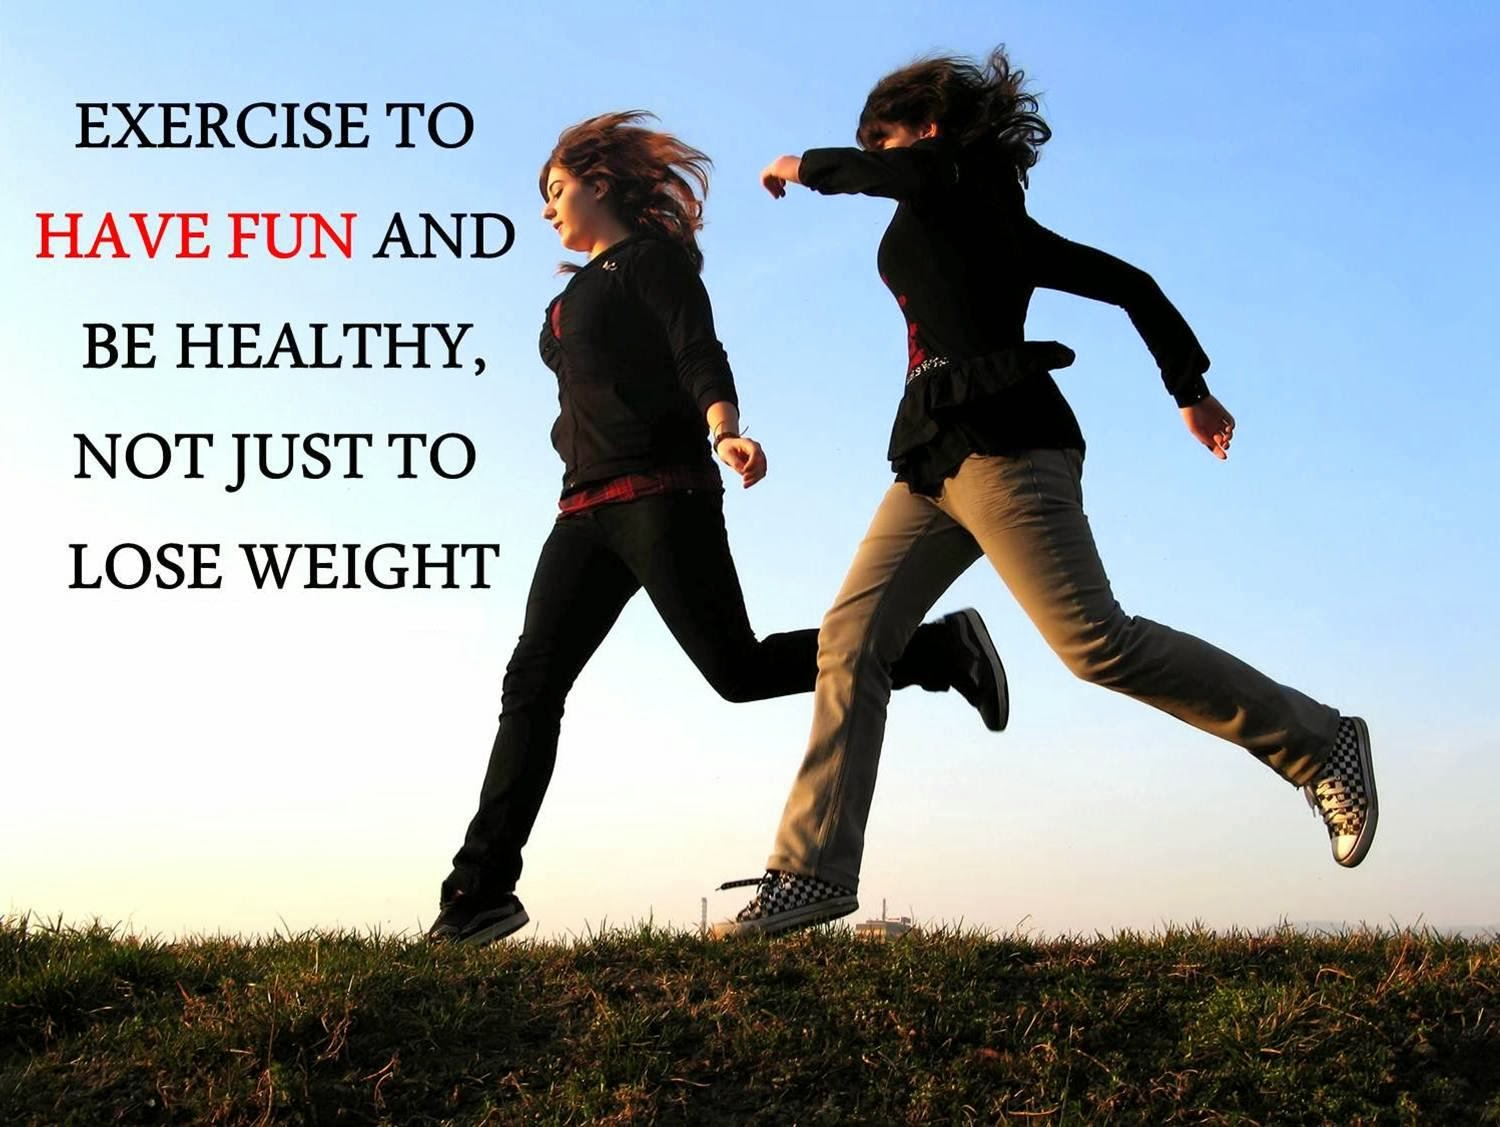 Daily Health News: Exercise